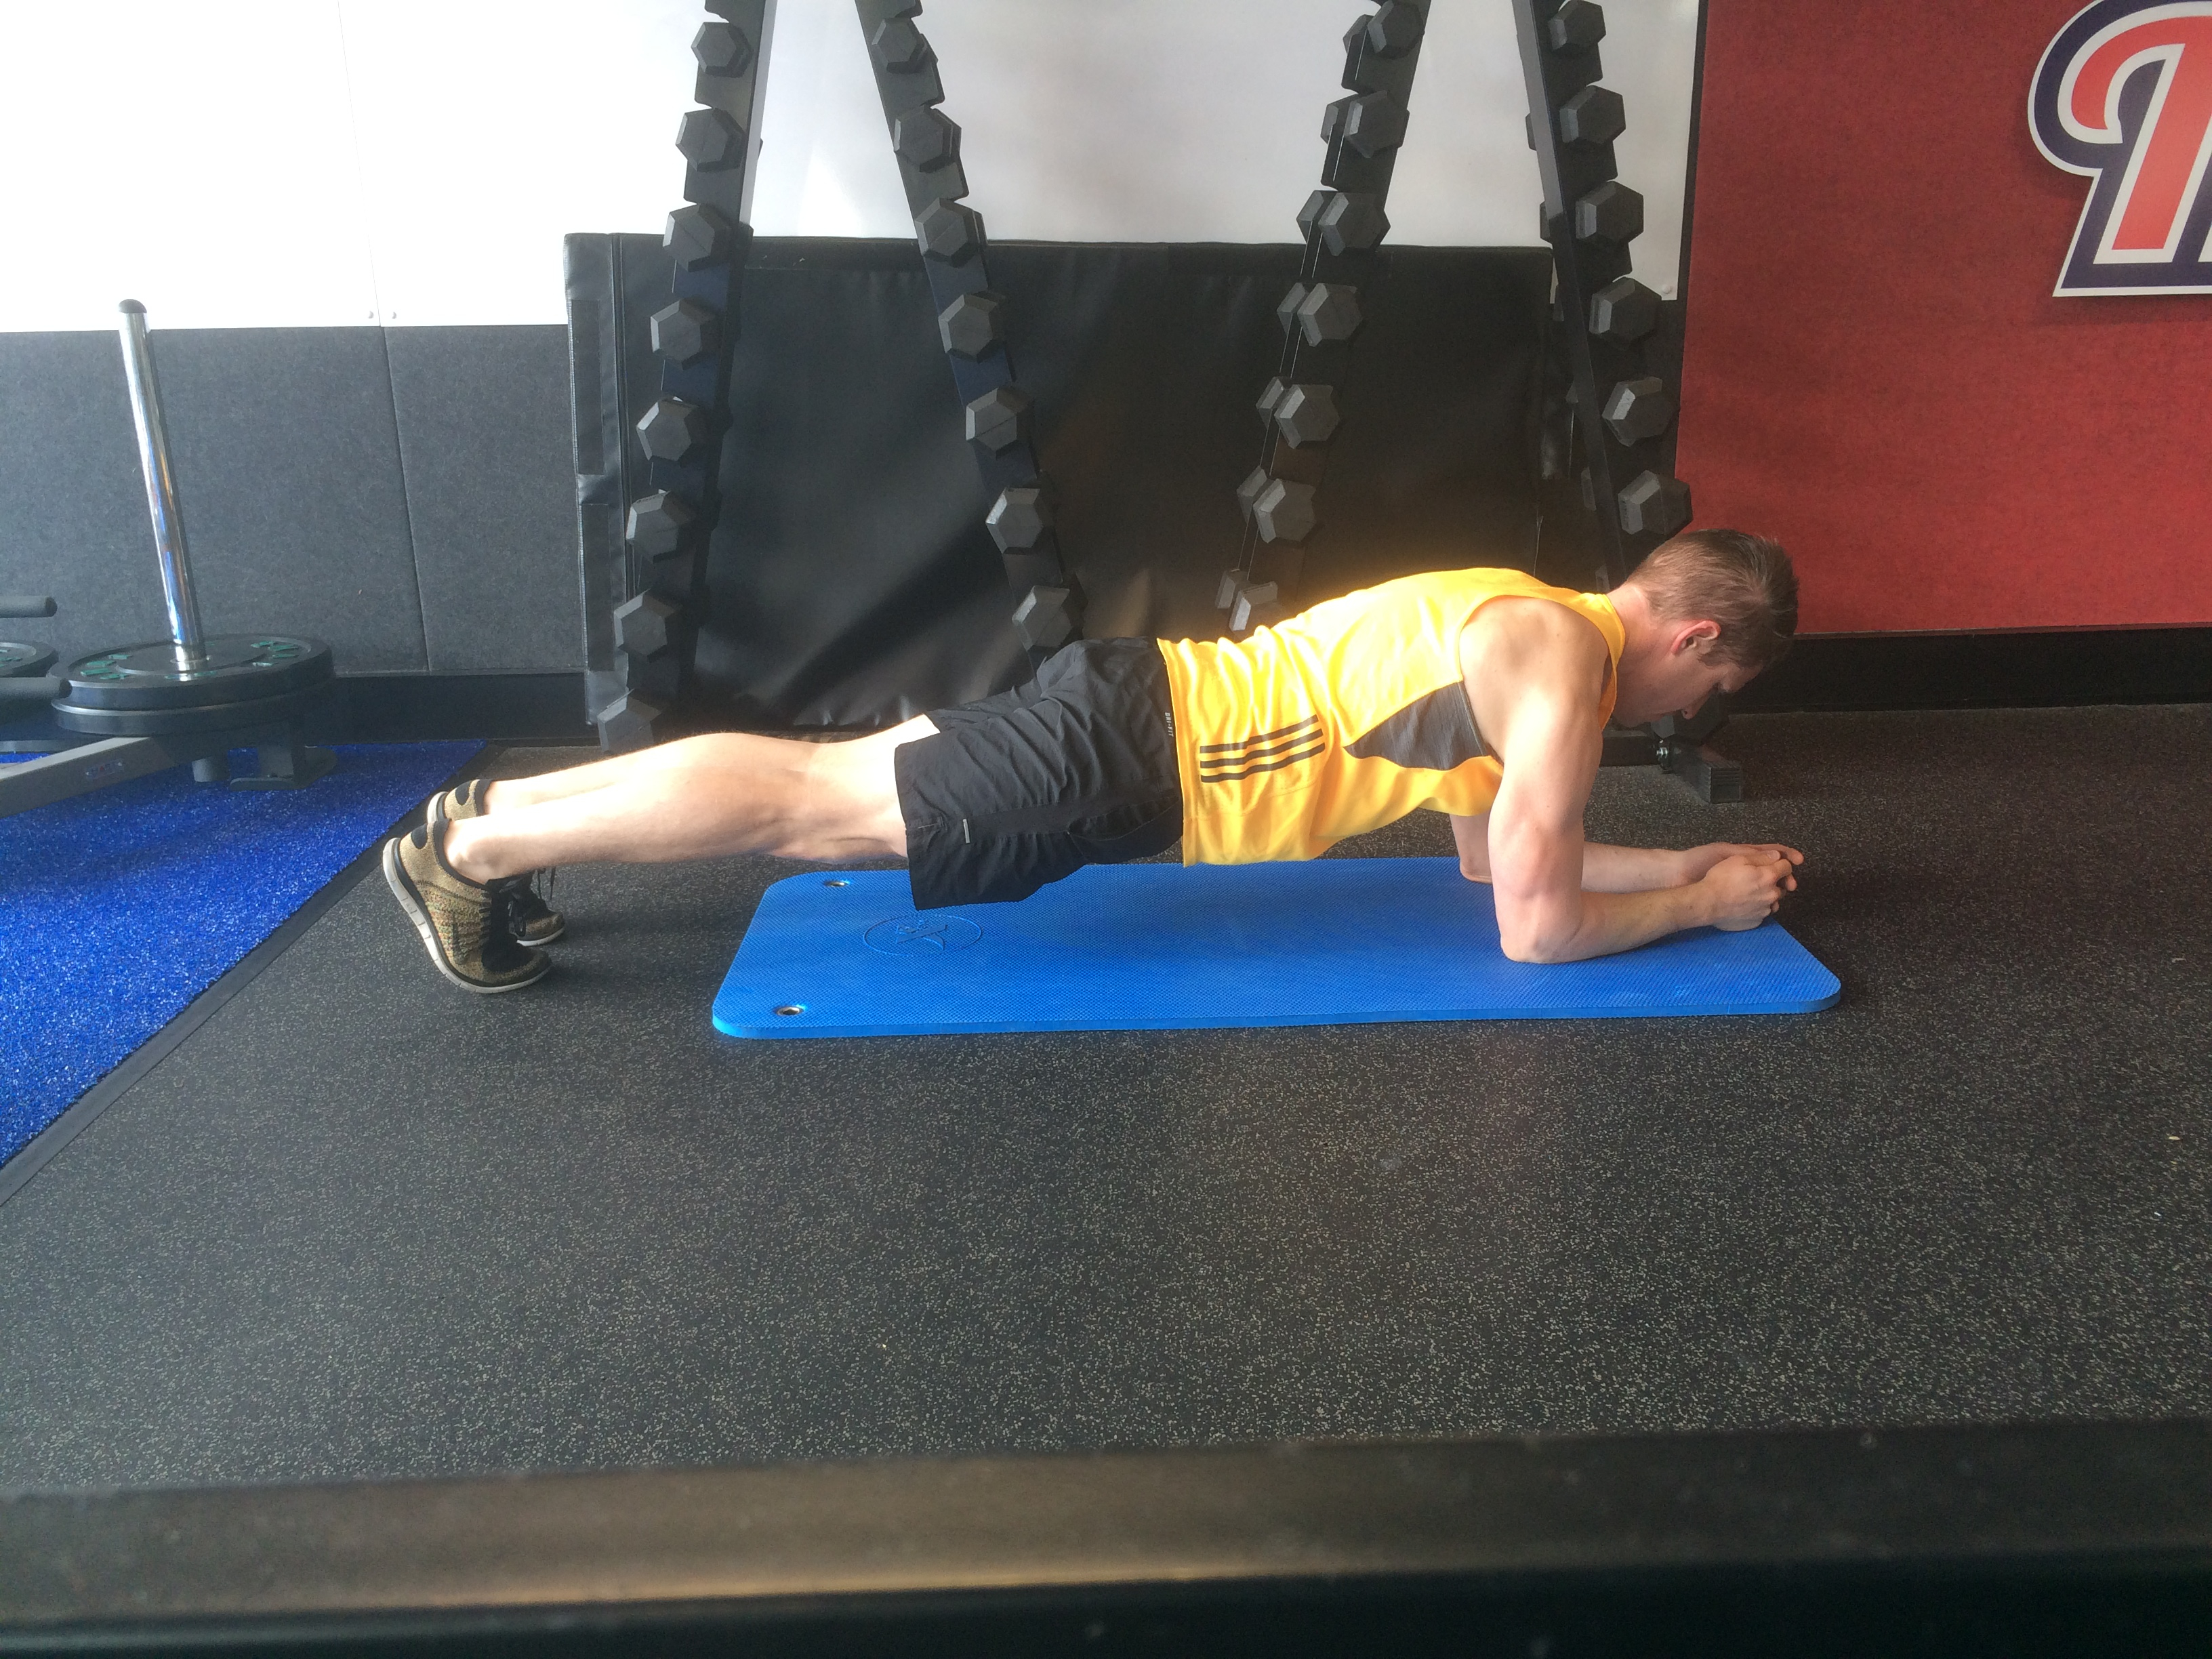 learn how to plank properly on the northern beaches with your local chiropractor